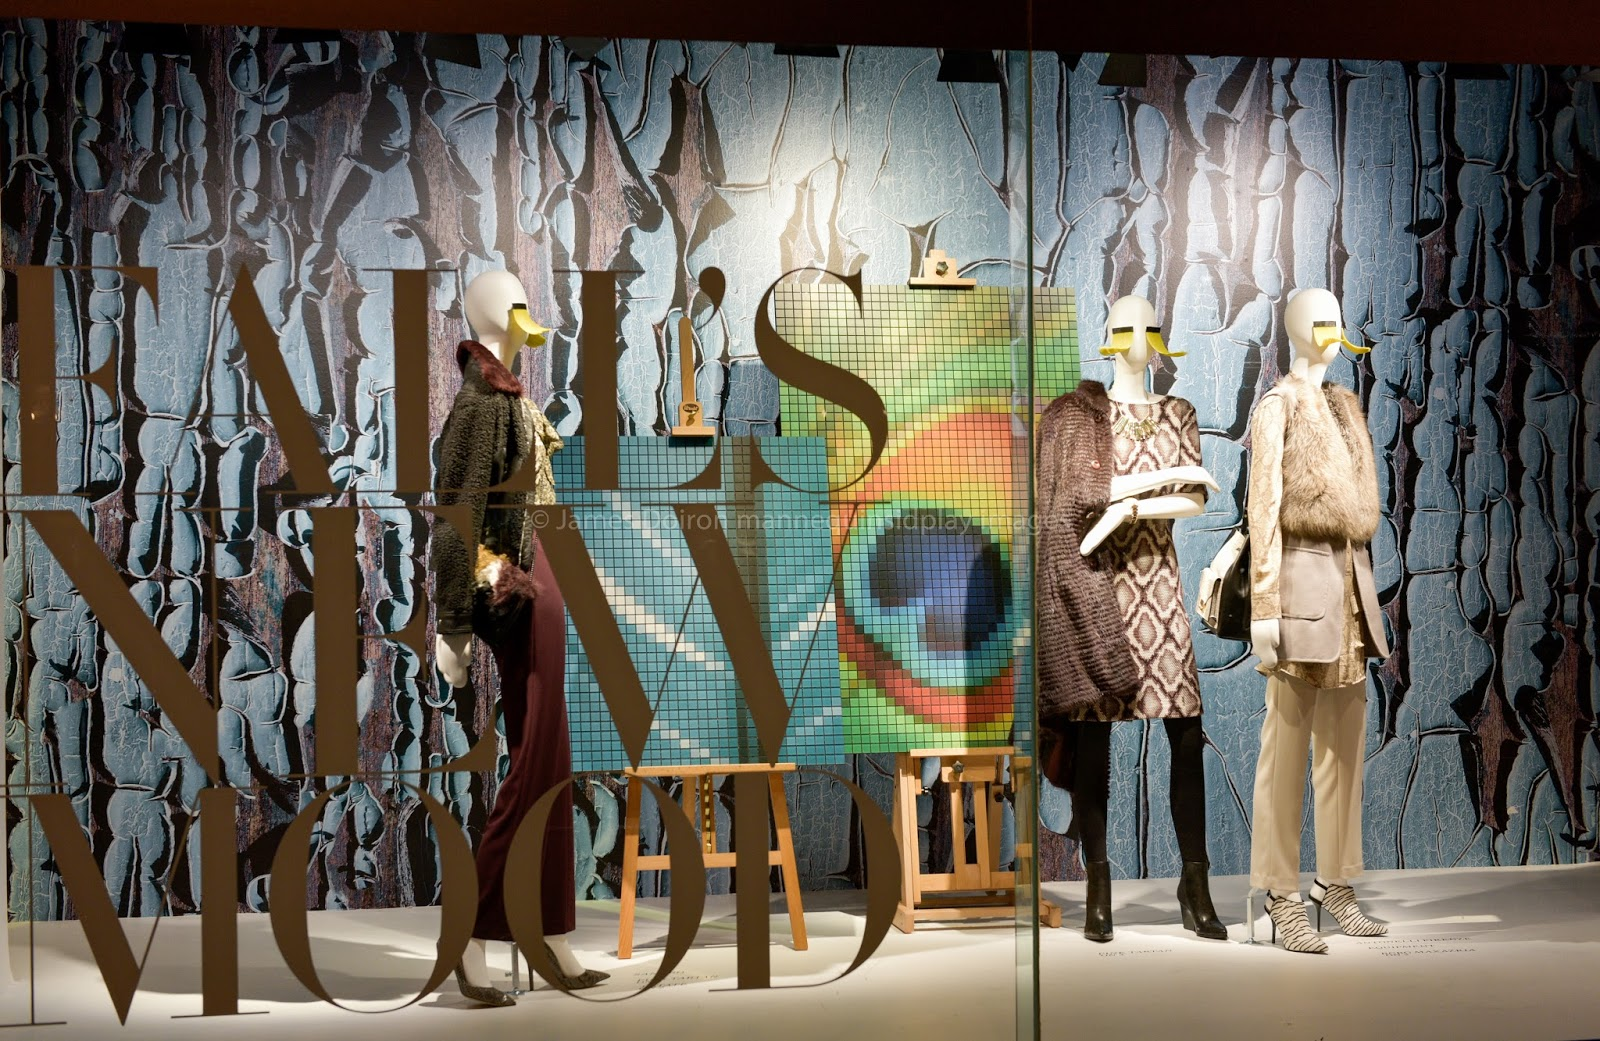 Hudson Bay is surprising us with wanna be paintings in the background composed of little squares and mannequins dressed in autumn clothes for the window display.